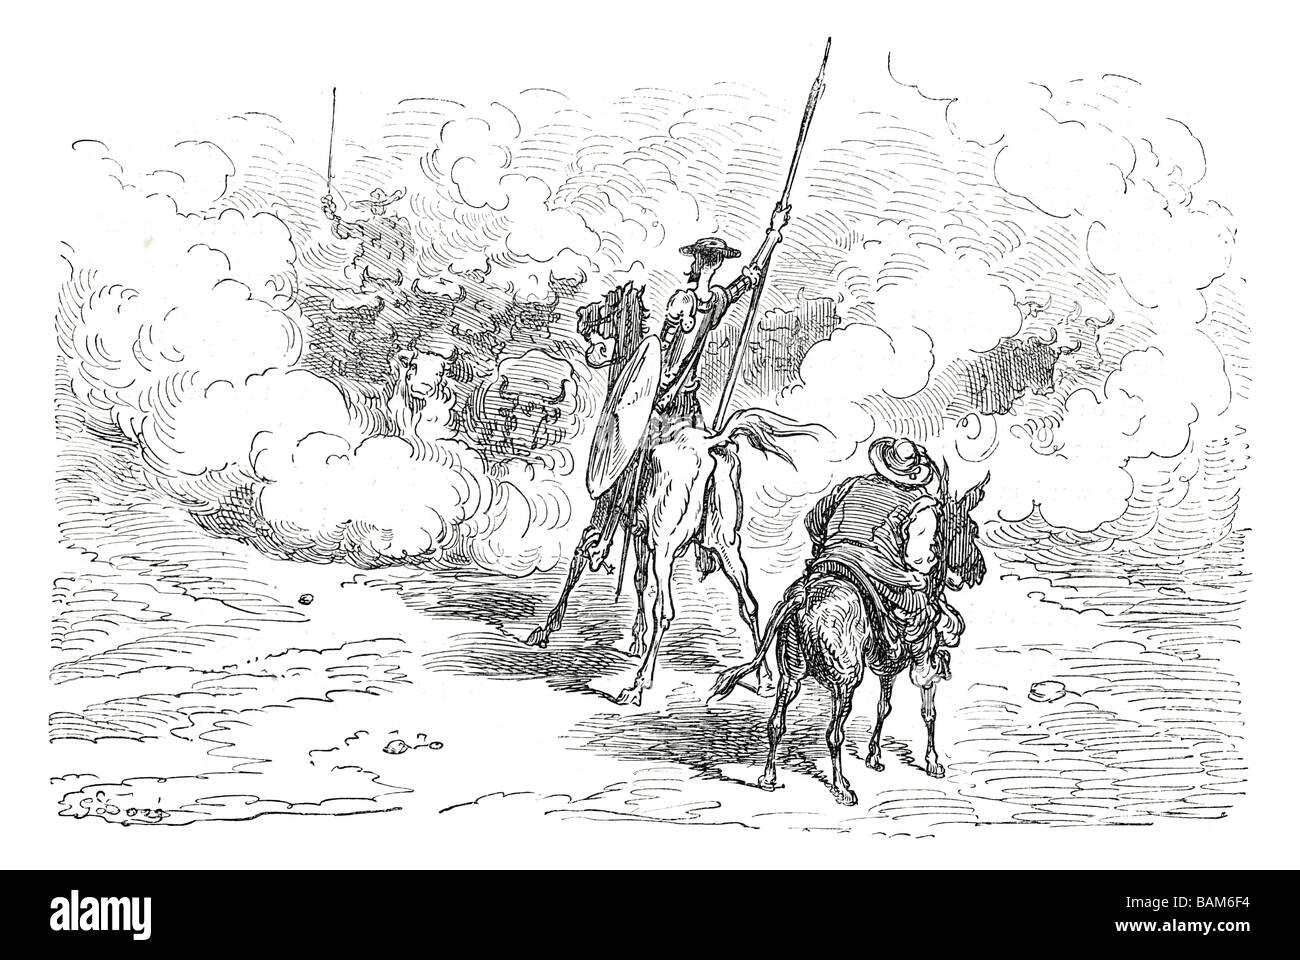 chapter LVIII 58 fifty eight Don quixote spanish novel Alonso Quixano Cervantes literature quest Stock Photo